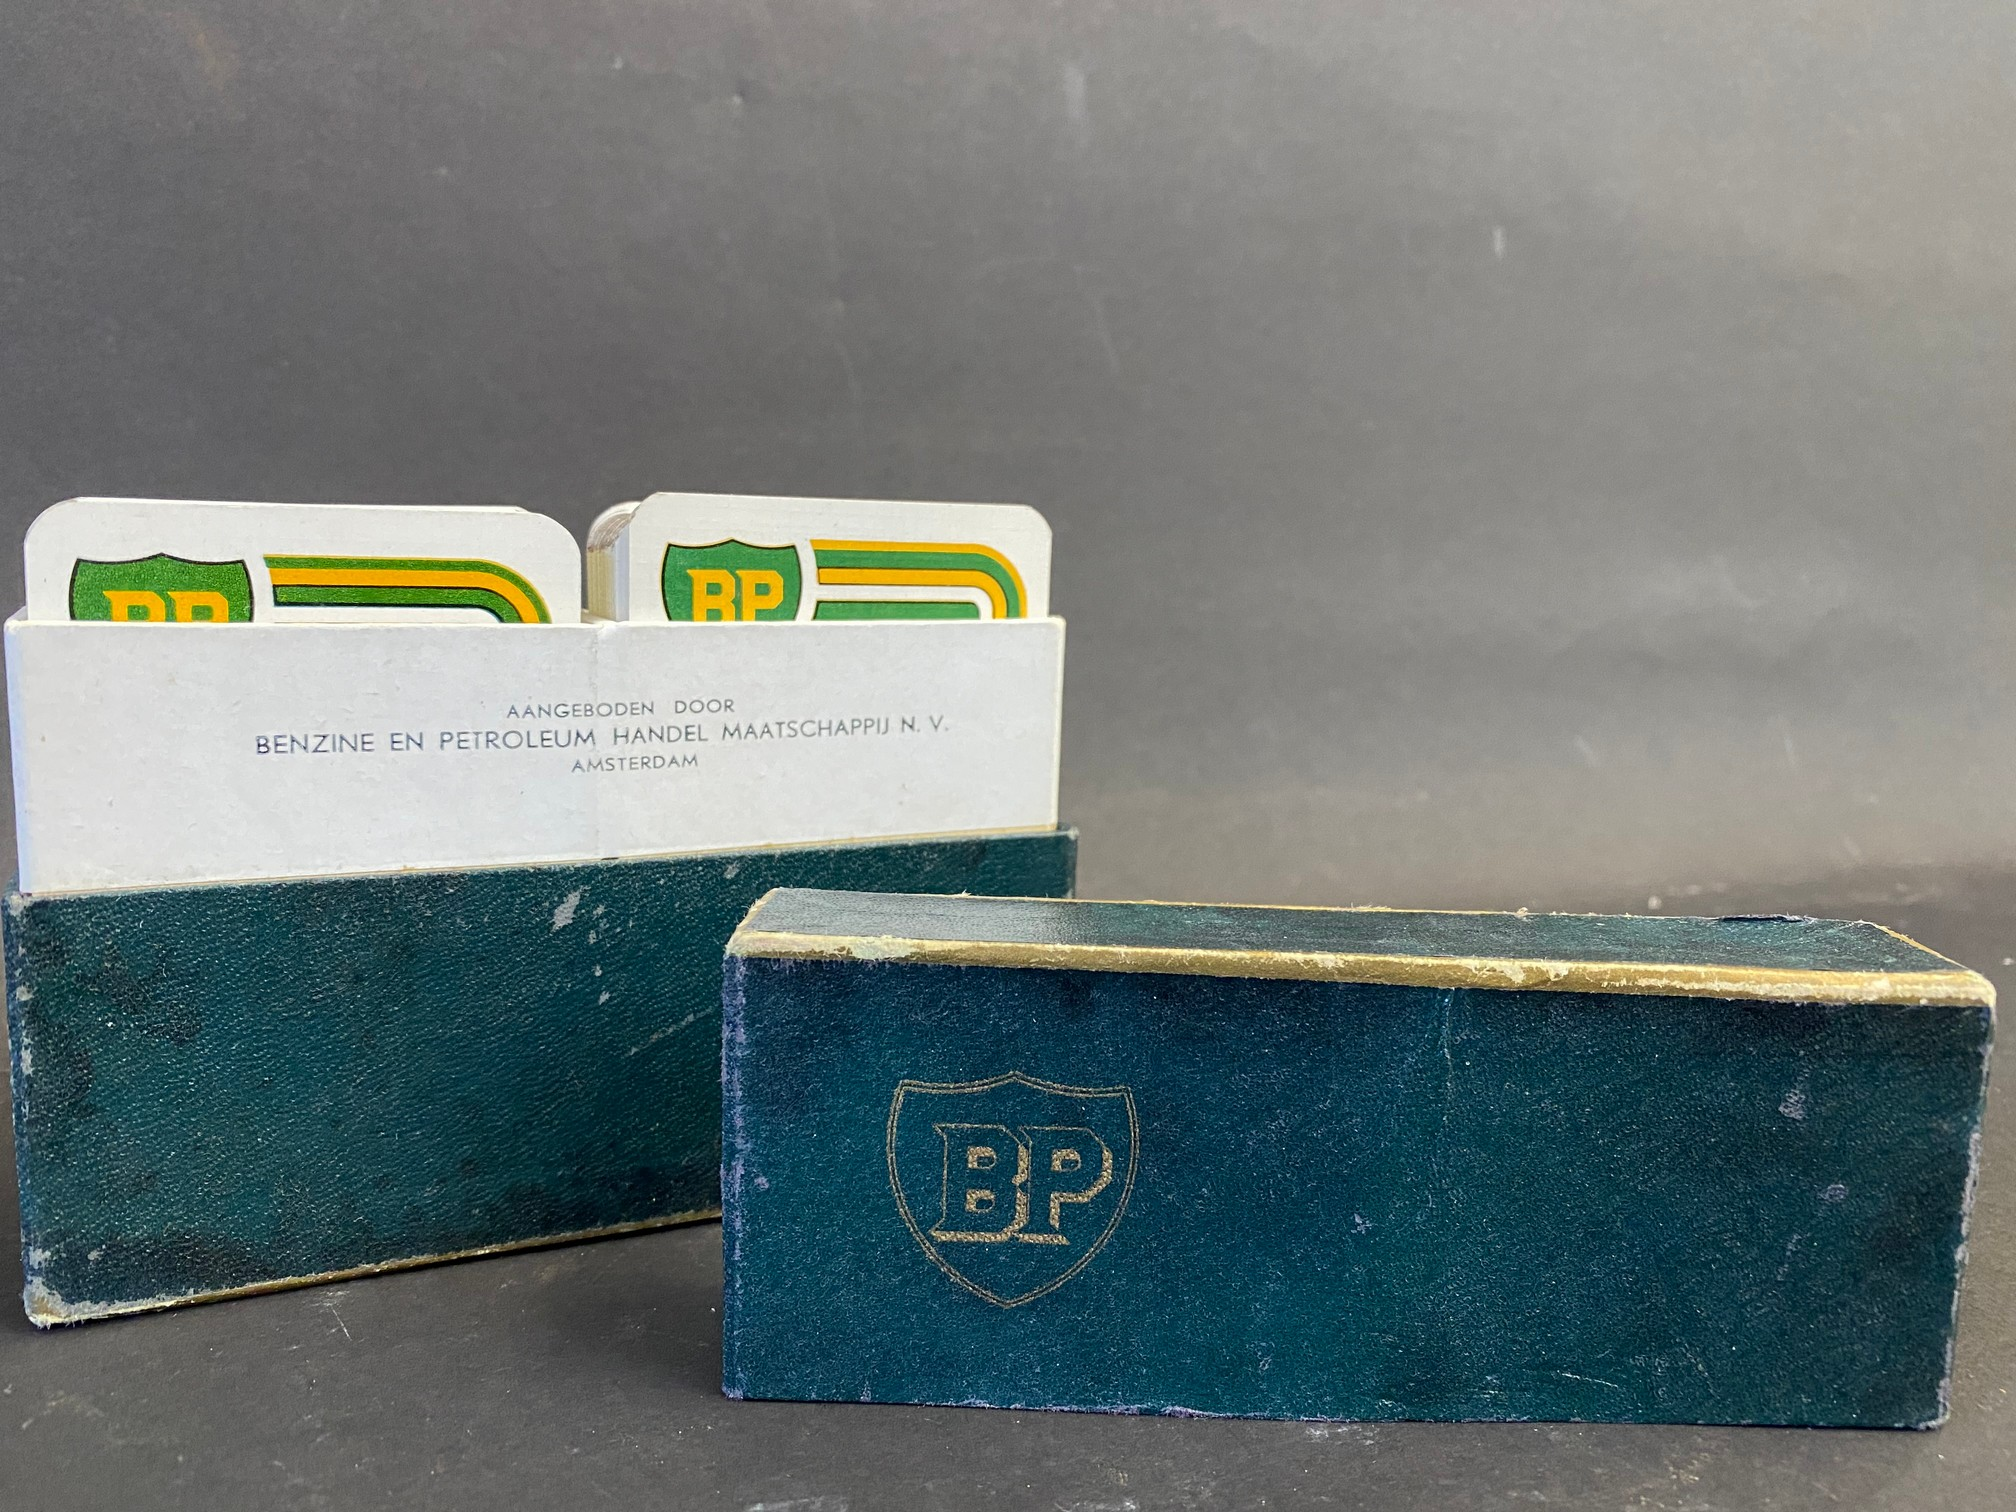 A near mint double set of BP playing cards.